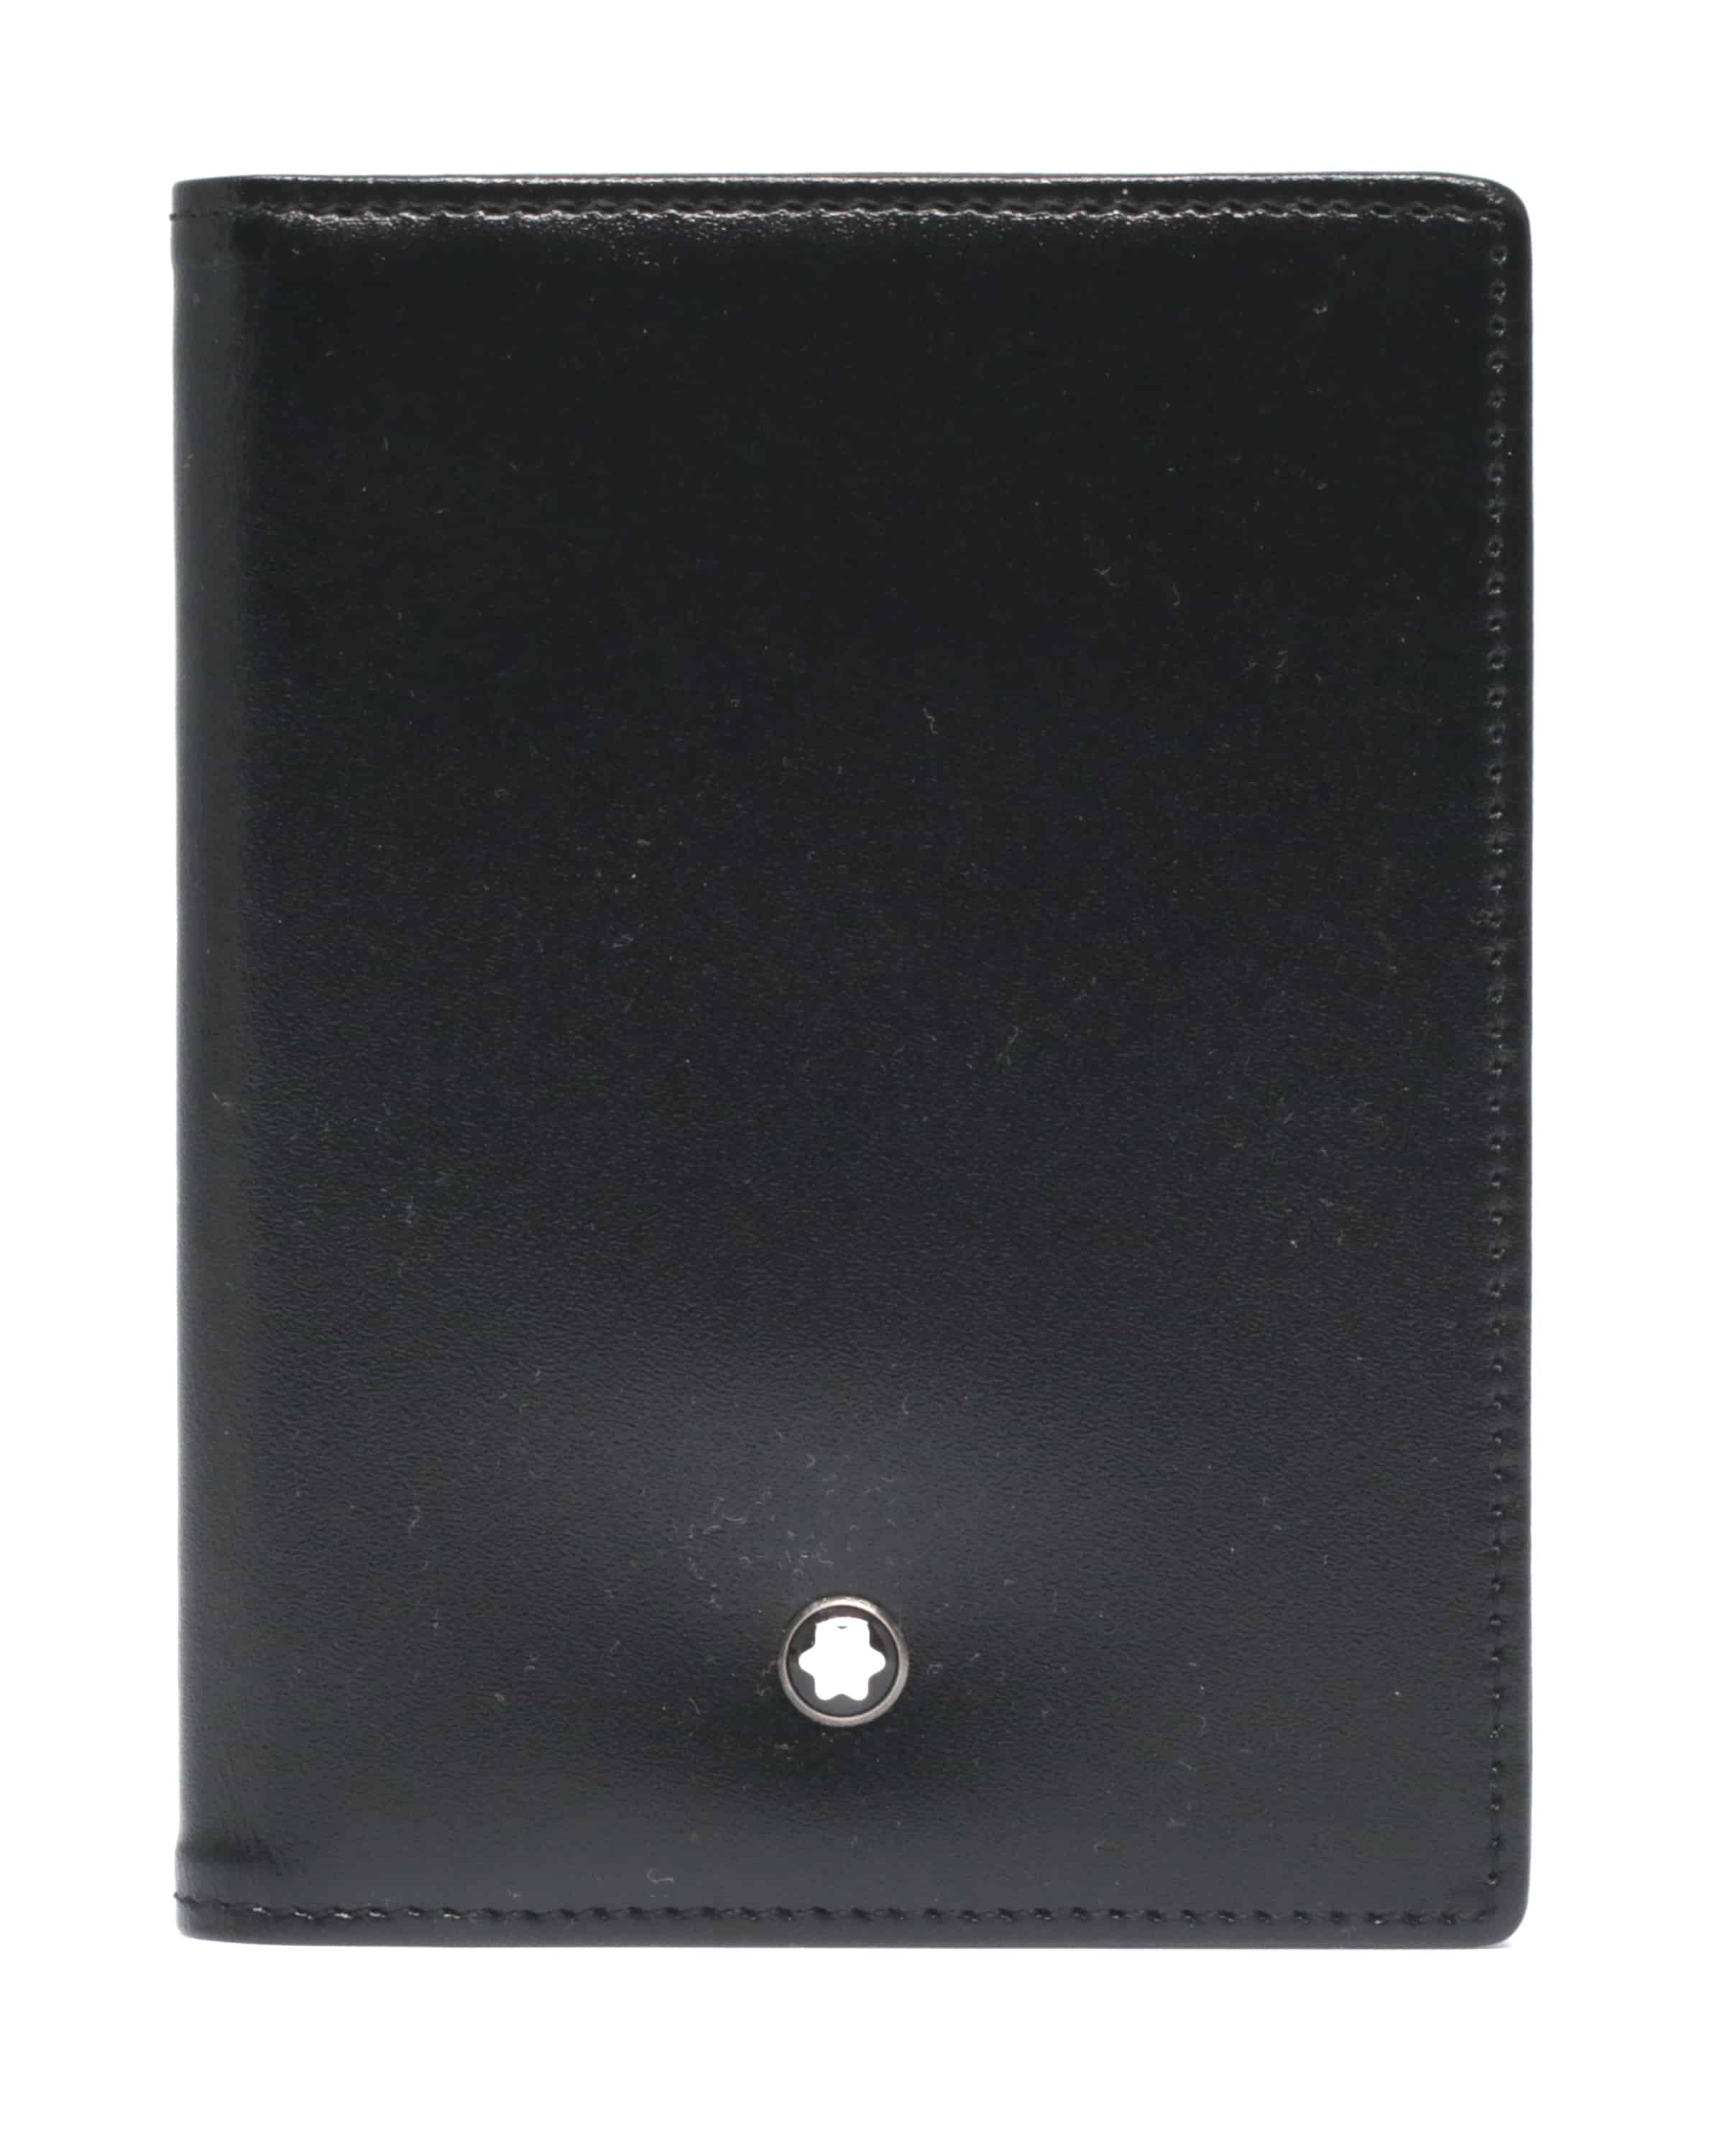 Montblanc Black Meisterstuck Credit Card Holder 5527